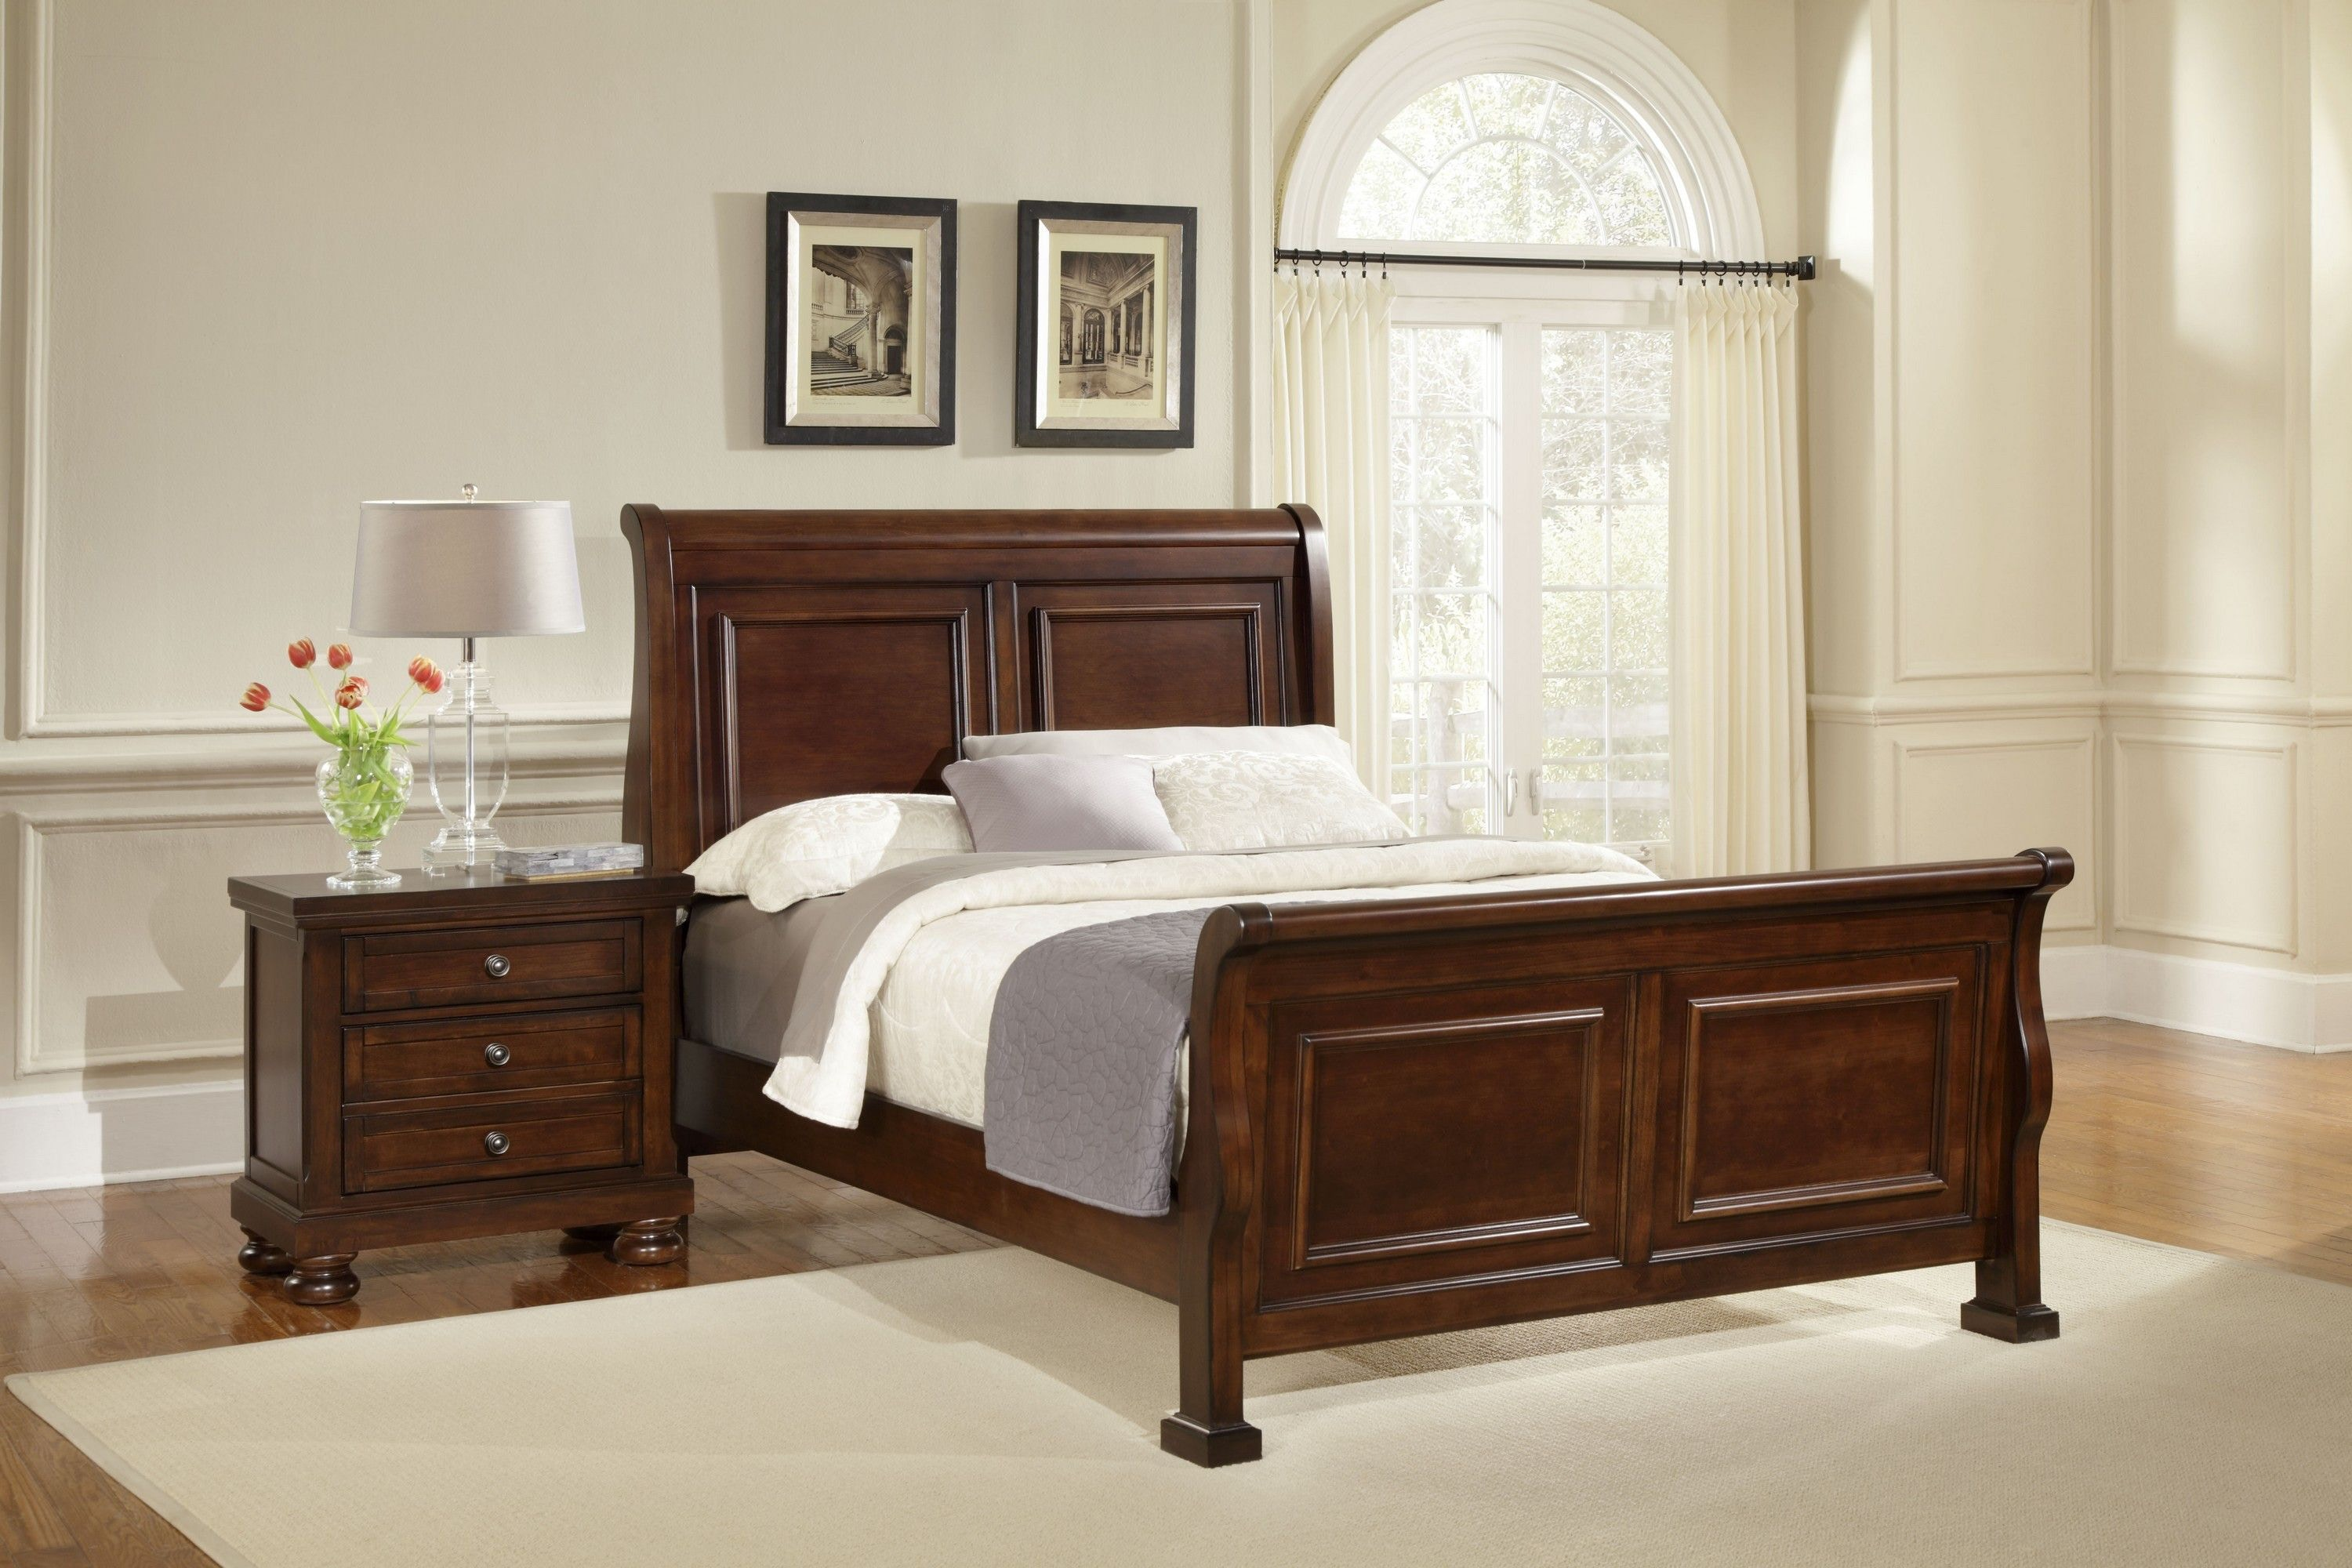 Vaughan Bassett Furniture Company Reflections Triple Dresser 470503